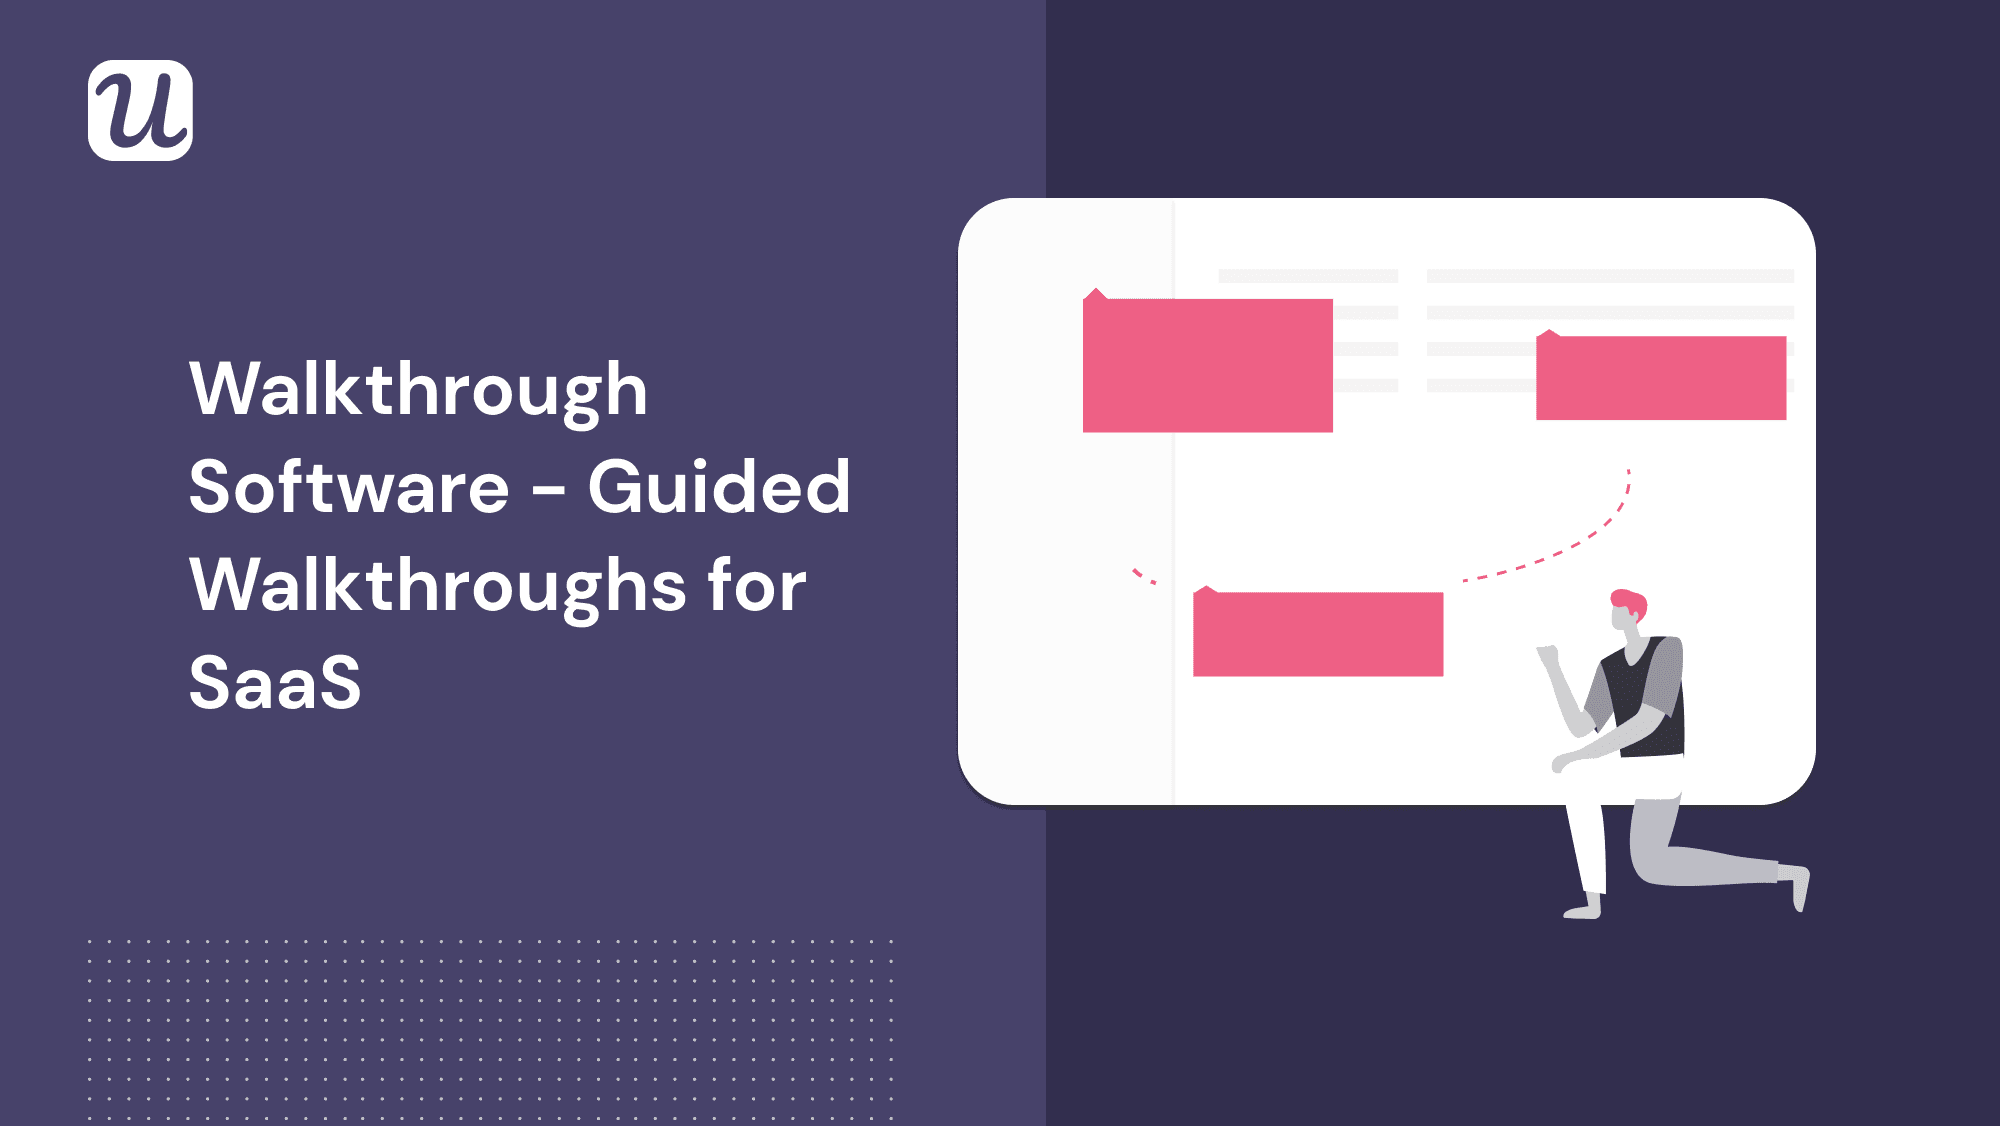 Top 3 Walkthrough Software & The Ultimate Guide to Interactive Walkthroughs for SaaS